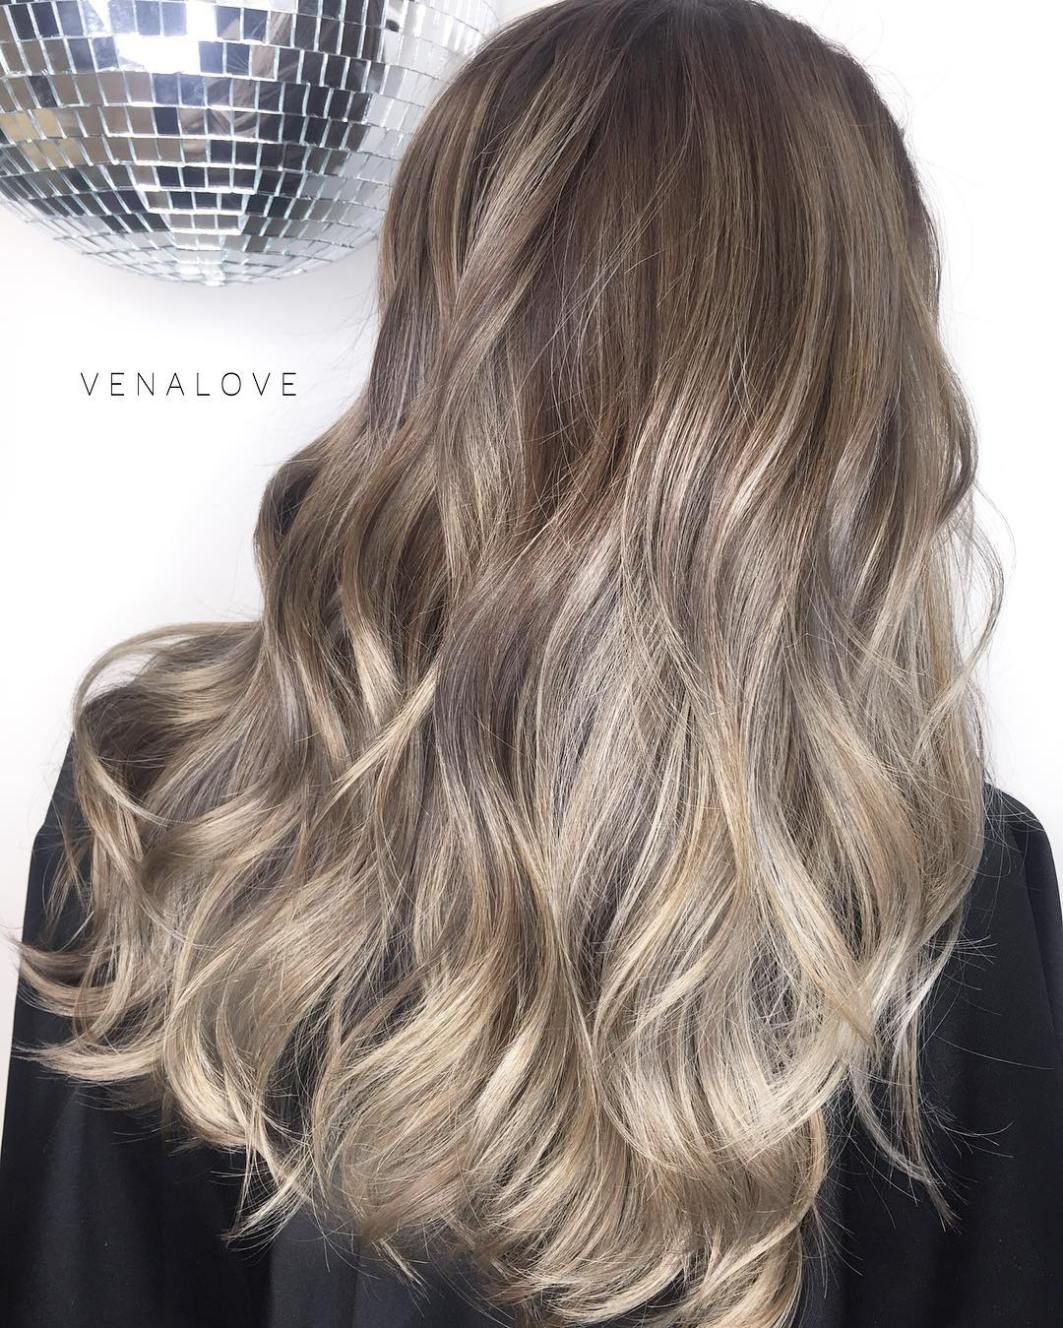 40 Blonde Hair Color Ideas With Balayage Highlights: 40 Ash Blonde Hair Looks You'll Swoon Over